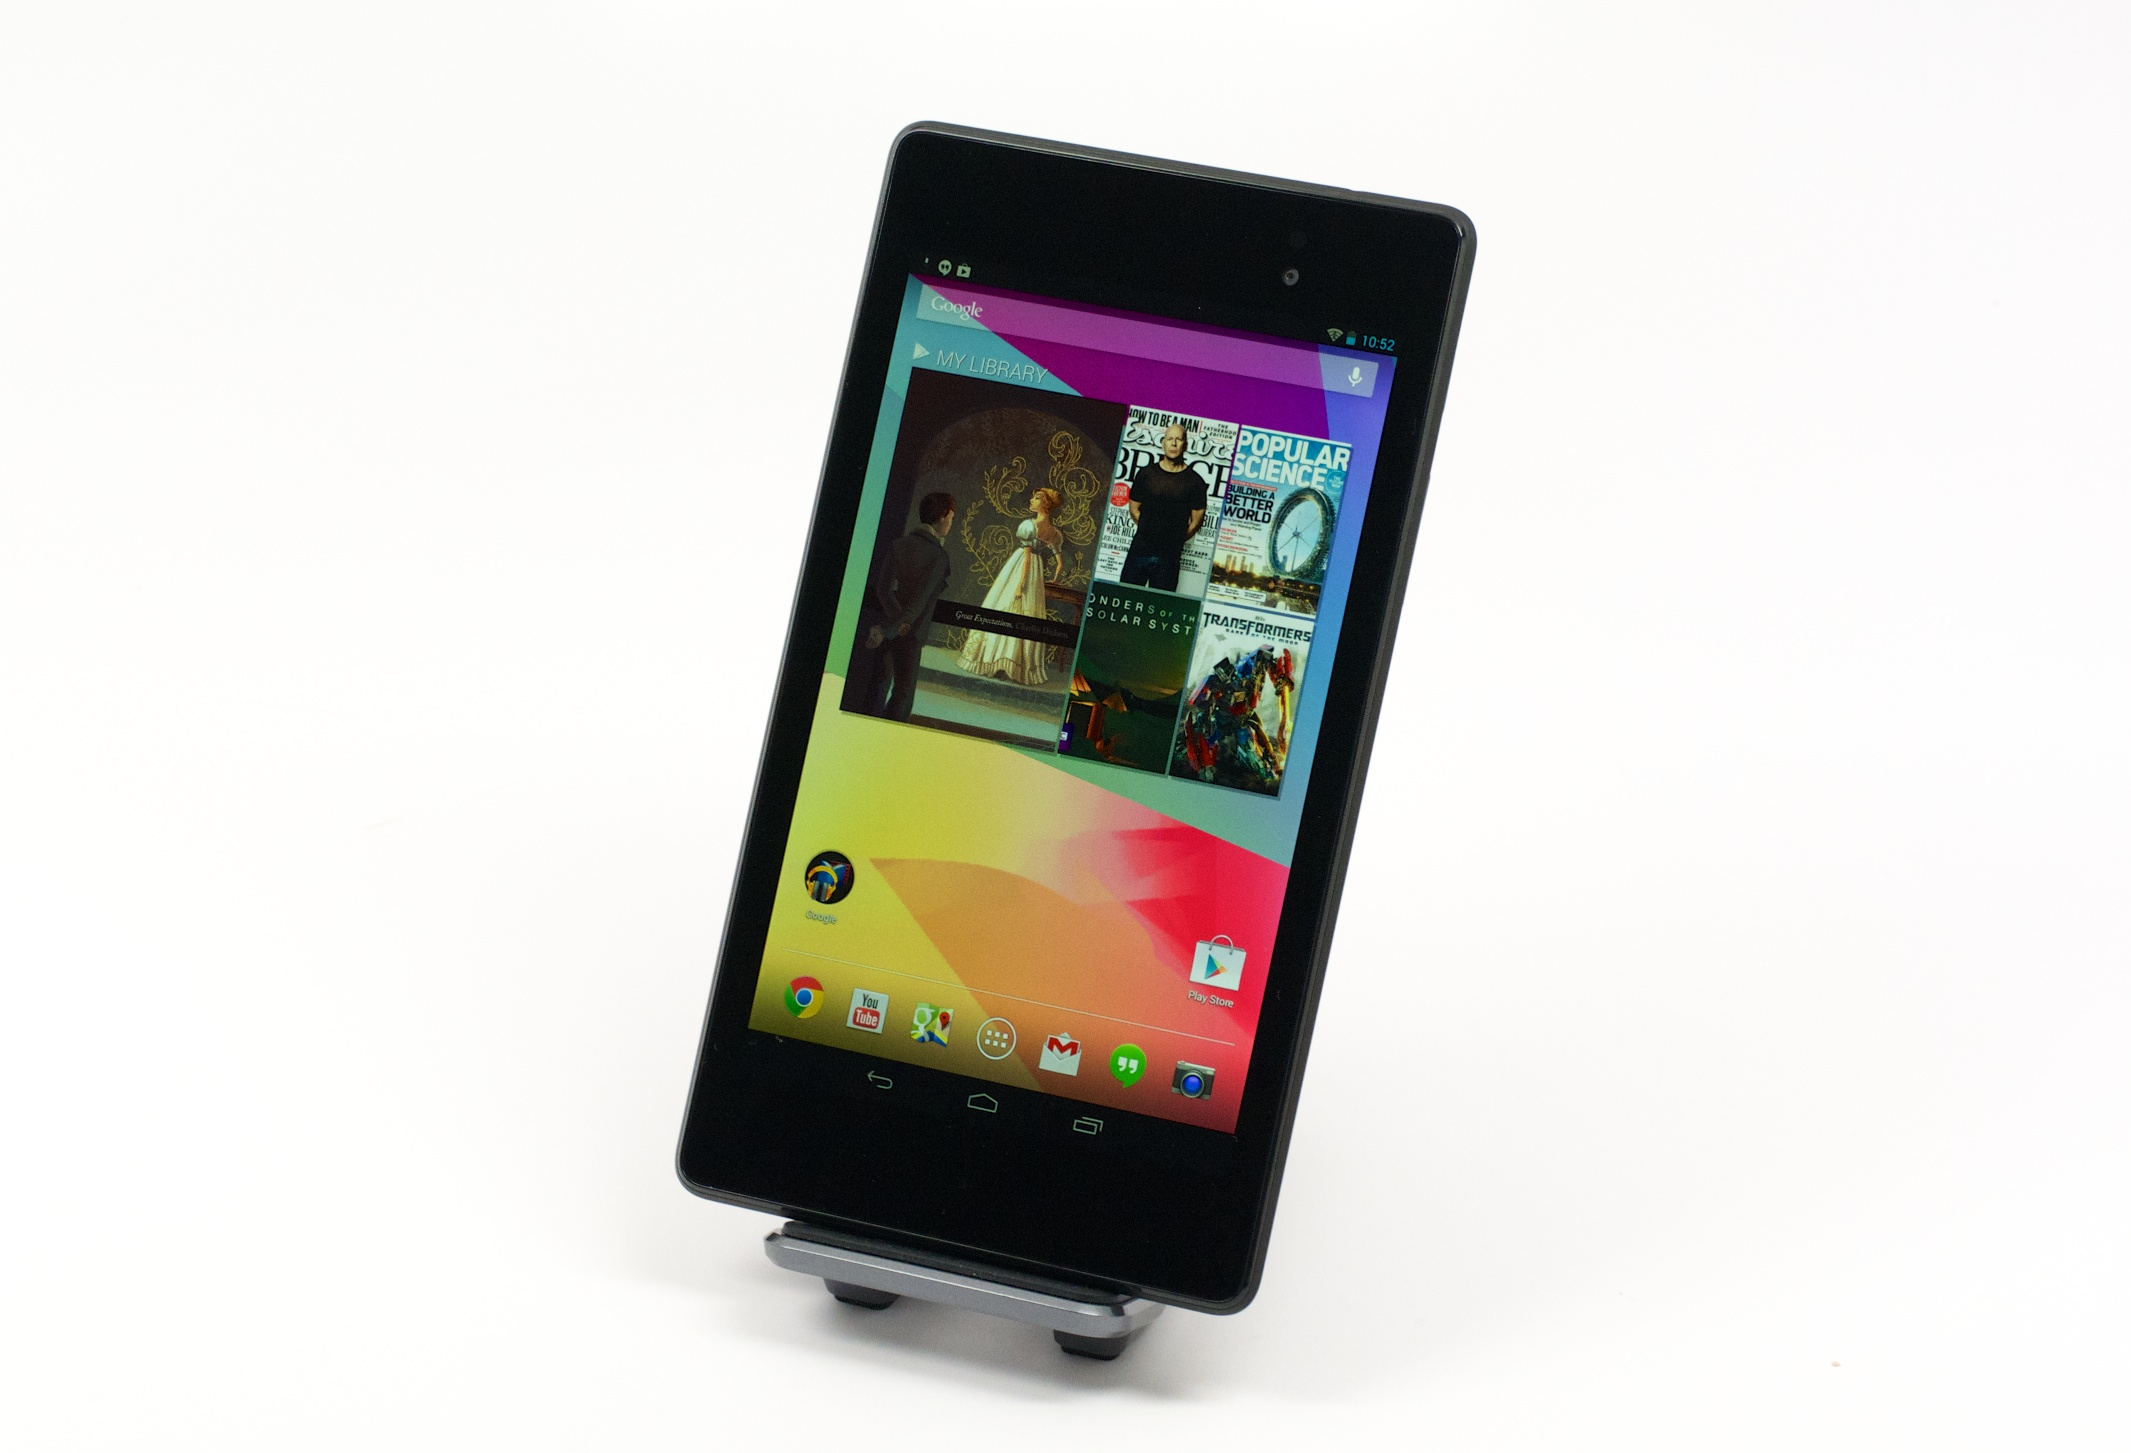 The new Nexus 7 features a high-resolution display.